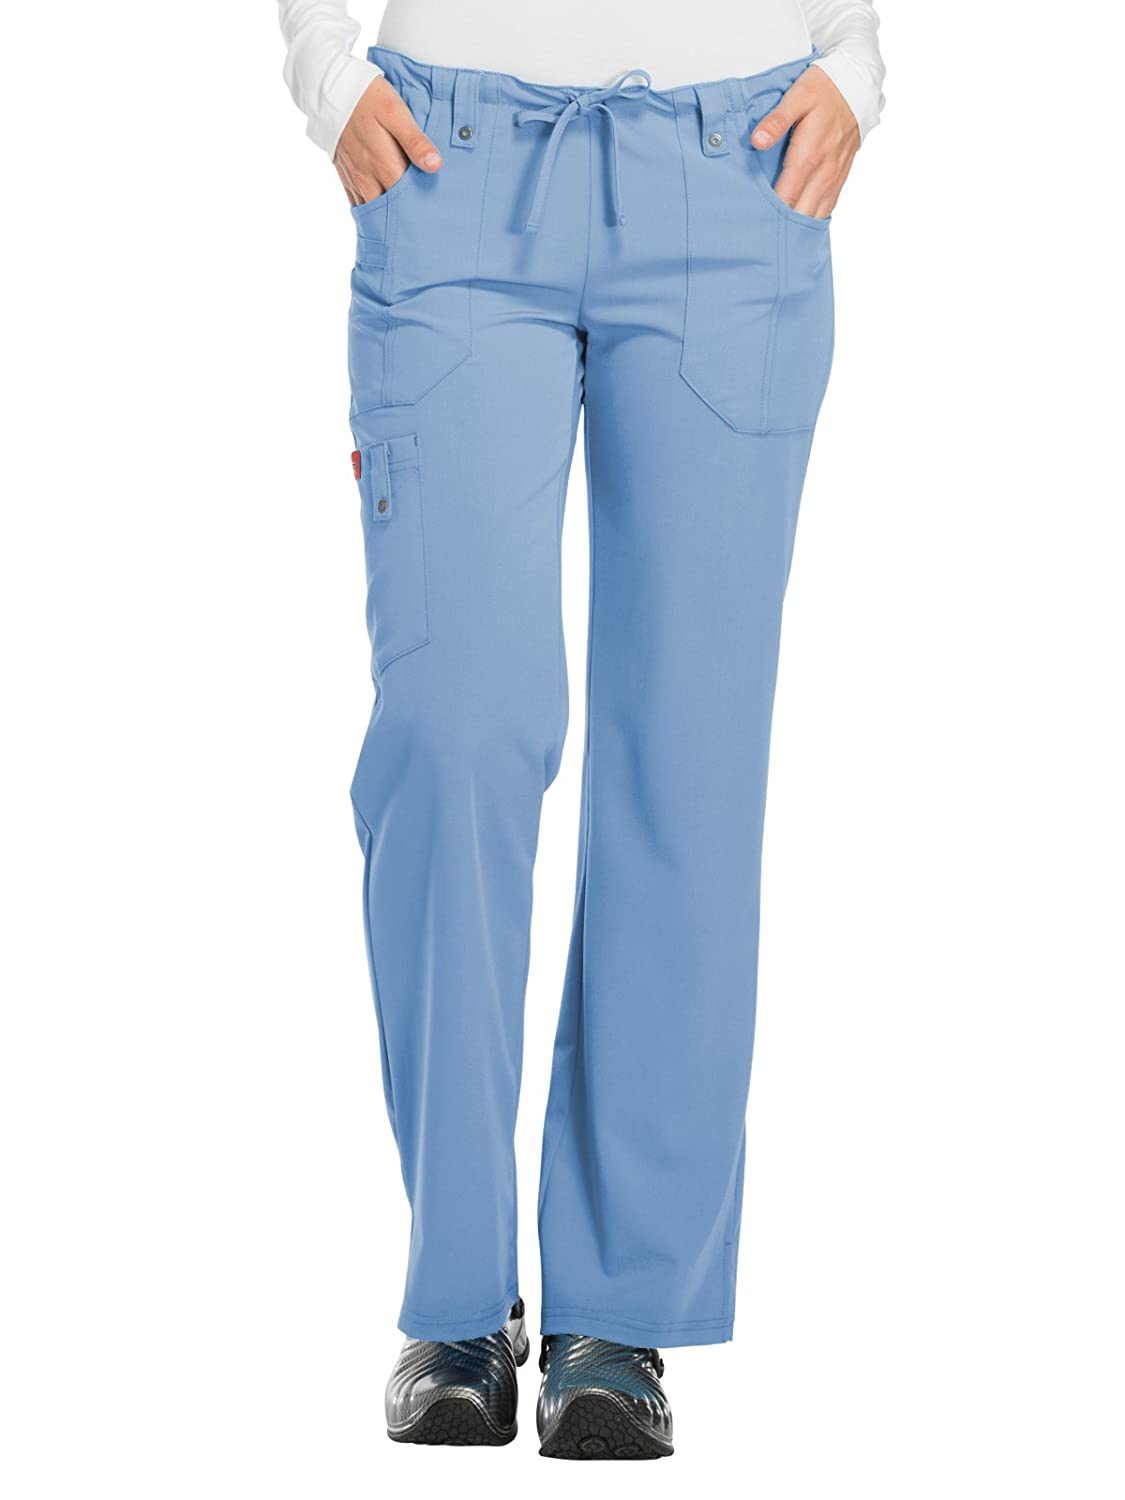 Dickies Scrubs Women's Xtreme Stretch Fit Drawstring Flare Leg Pant